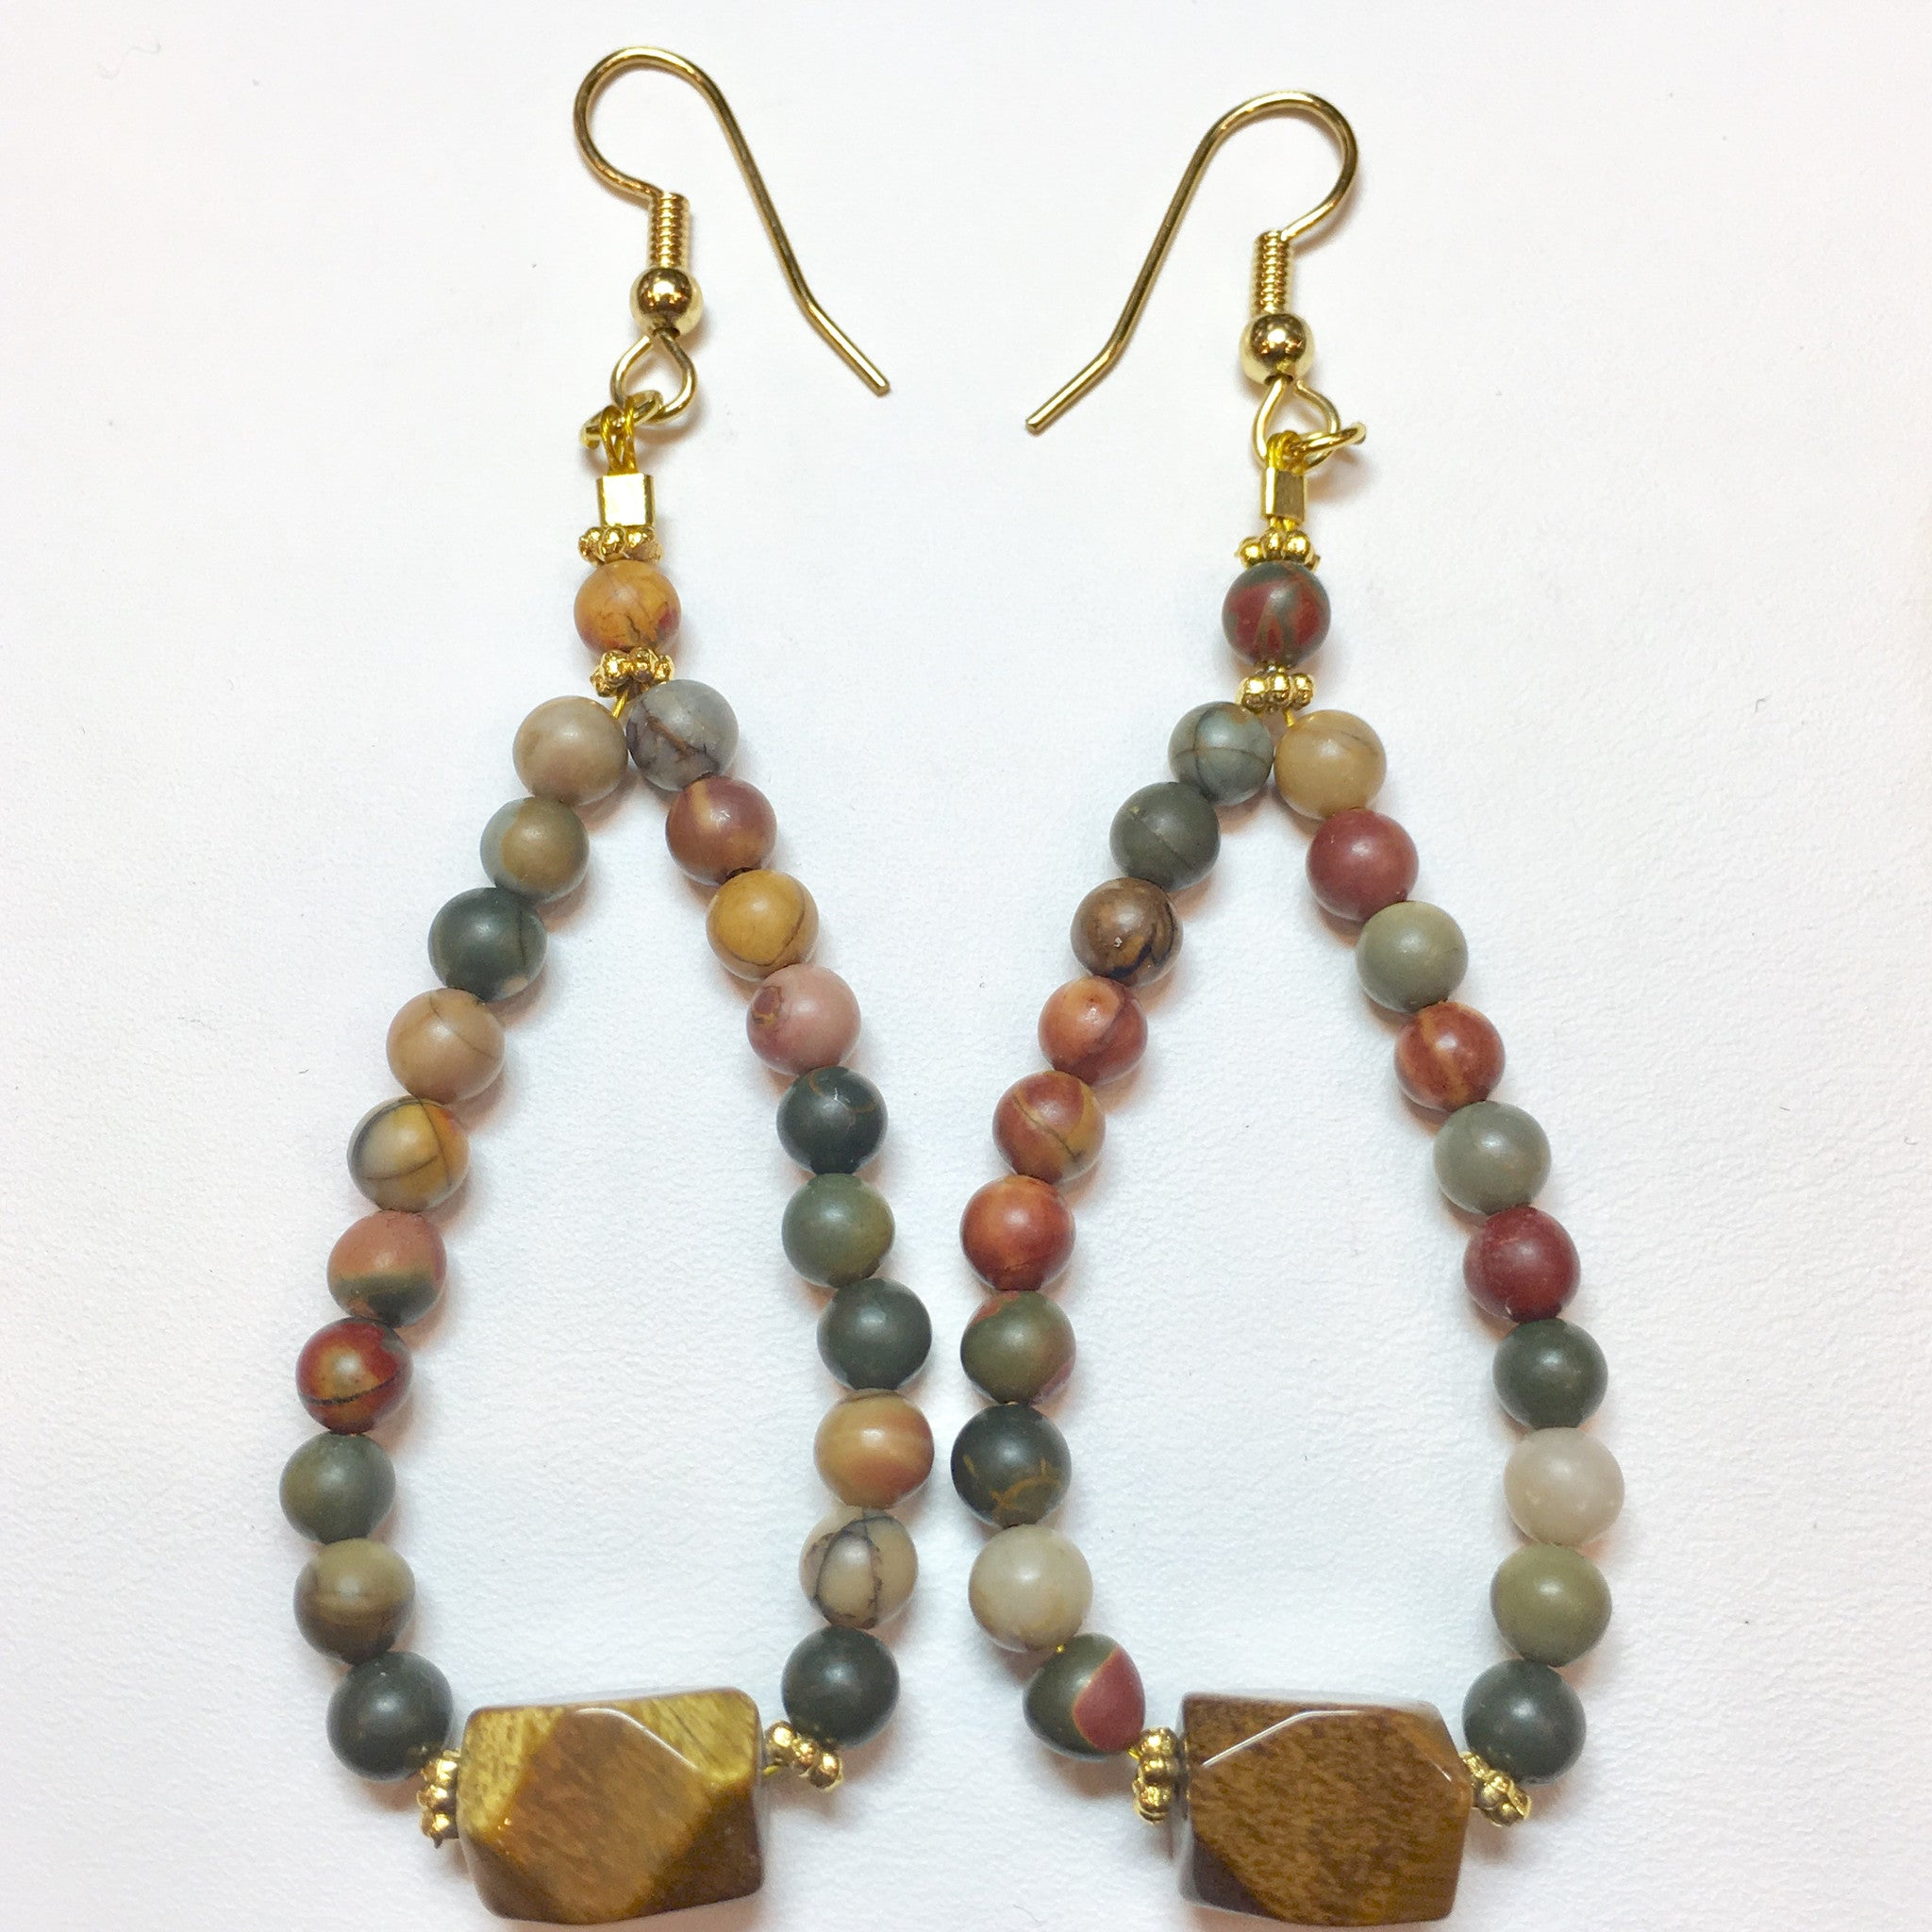 Red Jasper and Jasper Drop Earring - Real Chic Boutique  - 3